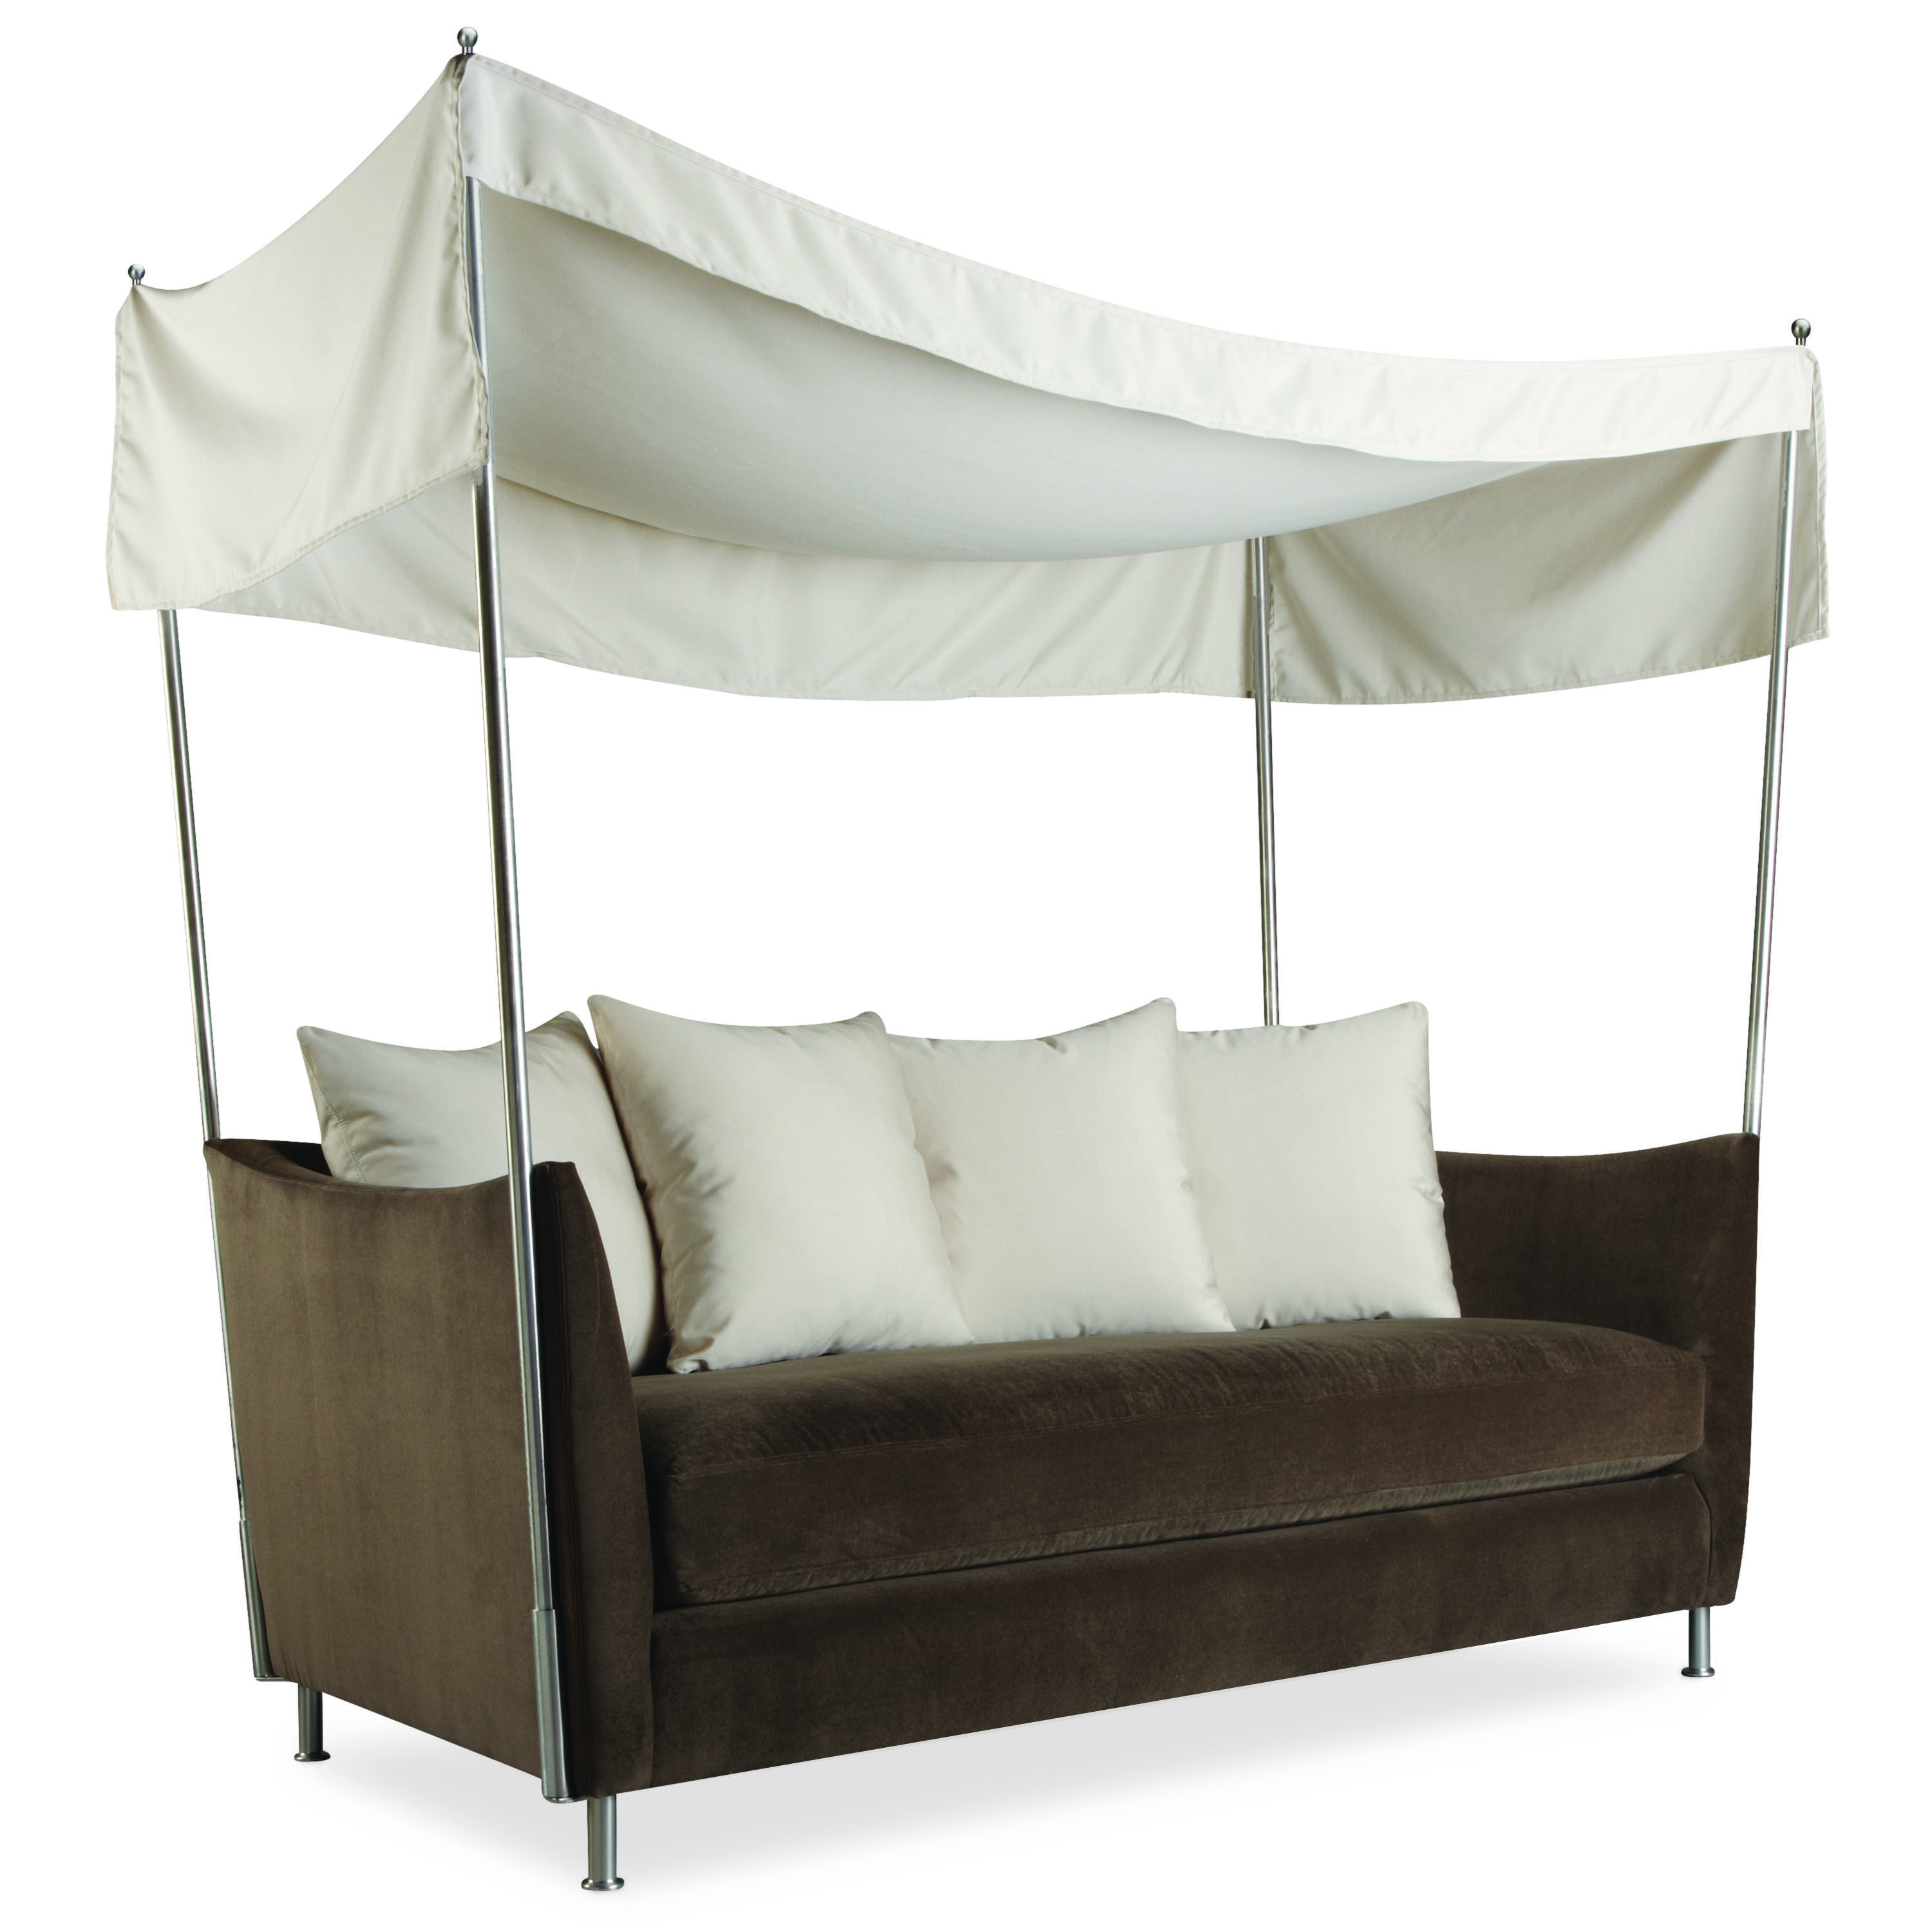 Lee Industries Oleander Outdoor Apartment Sofa With Canopy